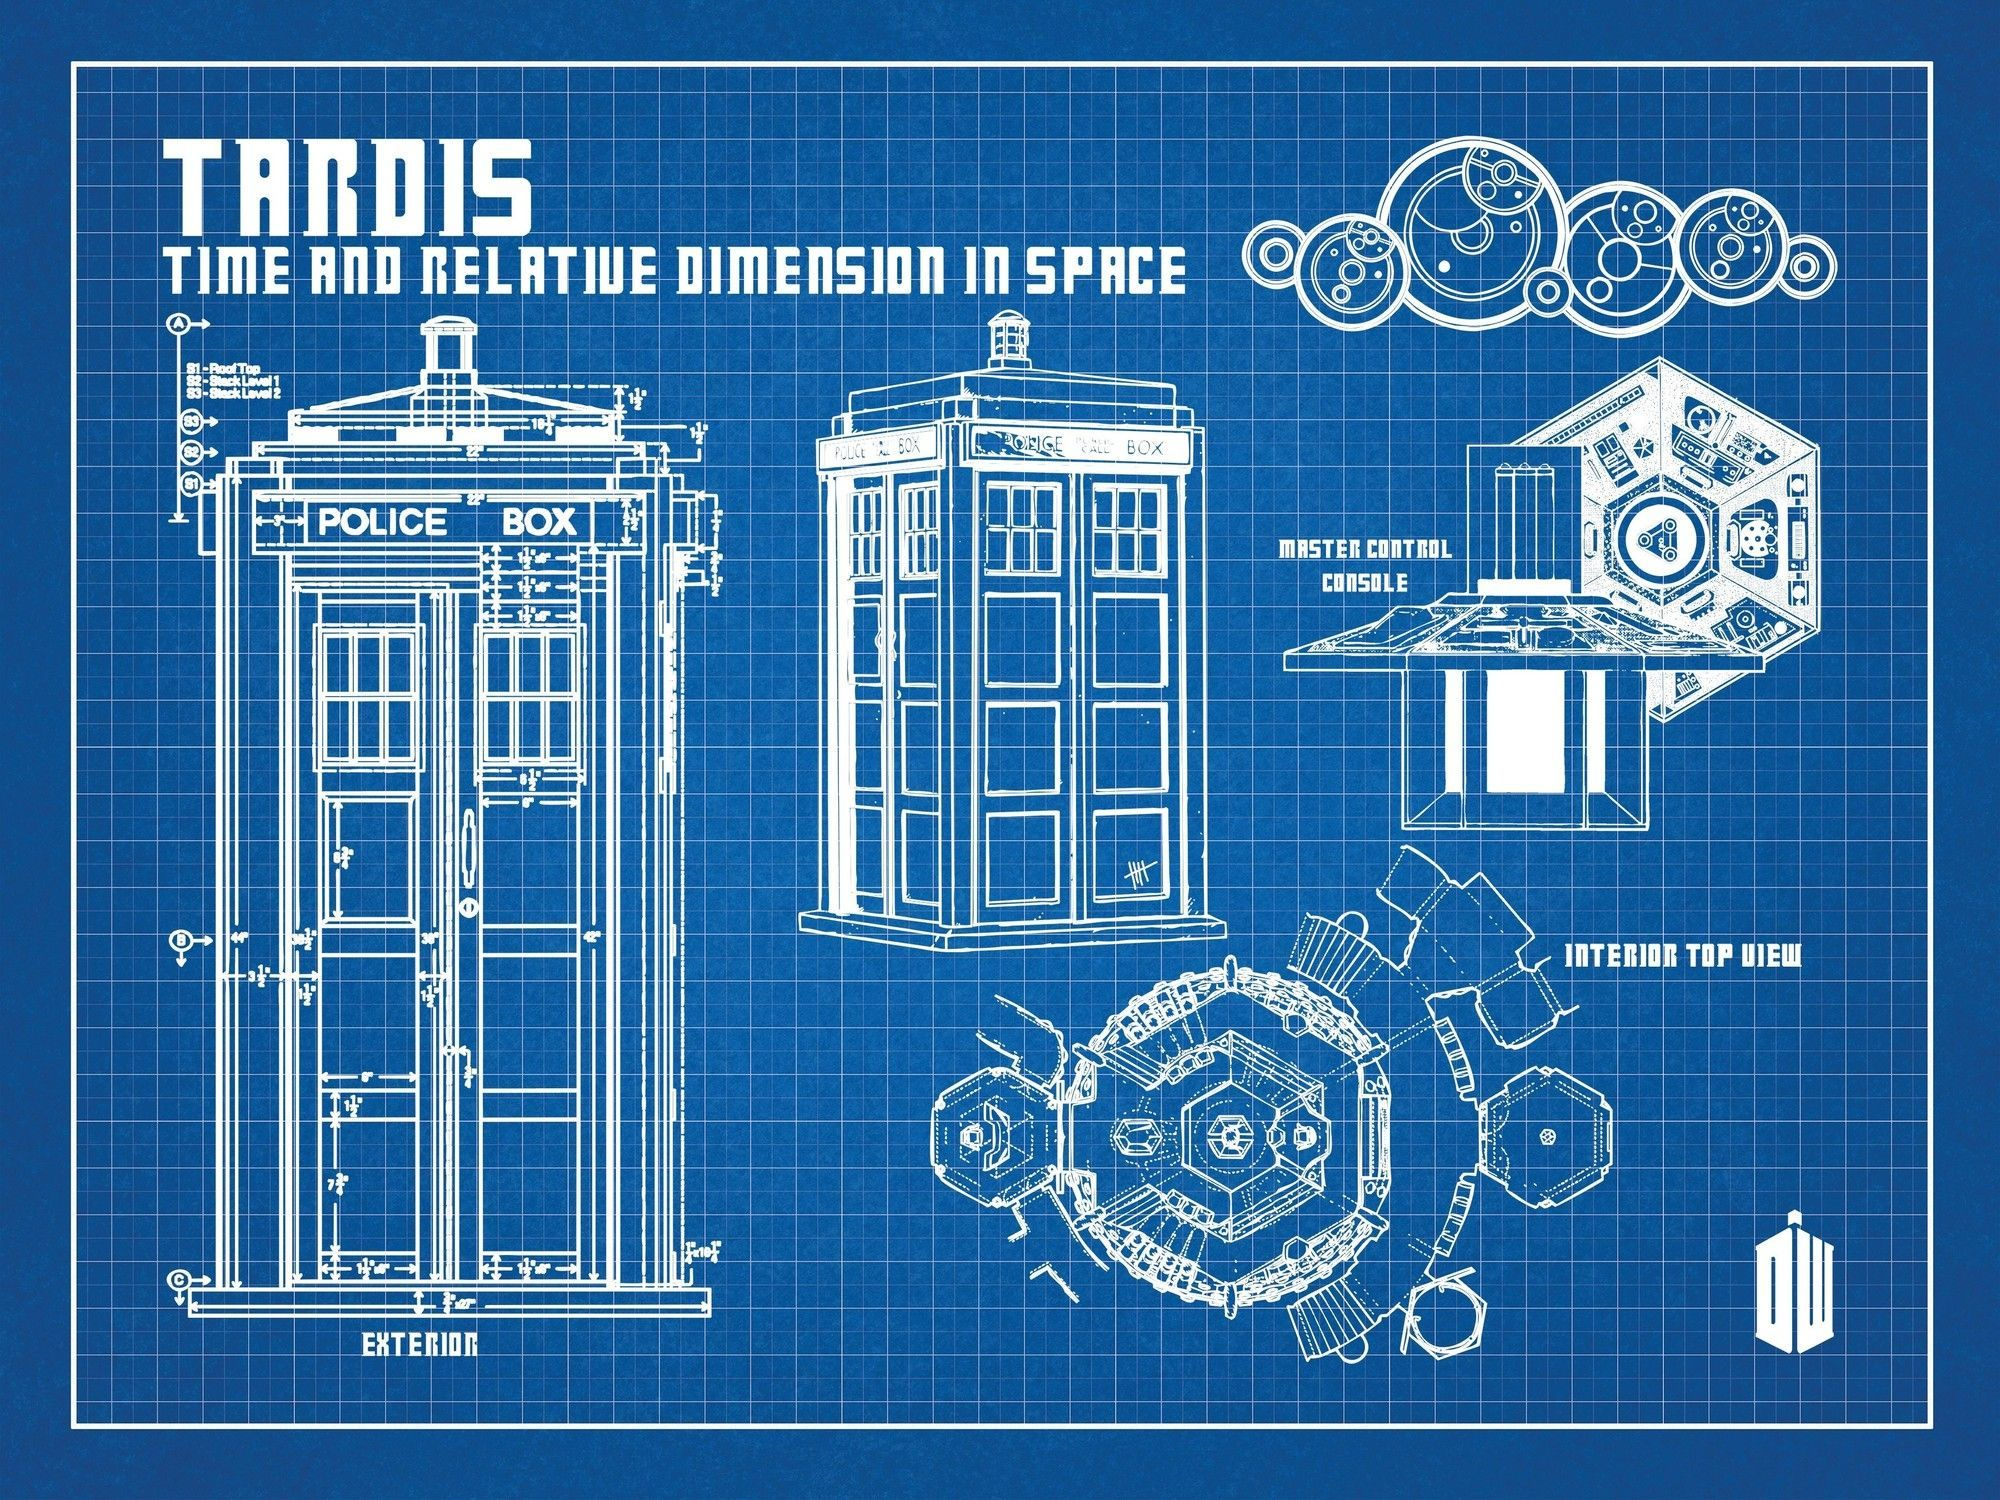 Doctor who tardis blueprint graphic art tardis geek stuff and doctor who tardis blueprint graphic art poster in blue gridwhite ink malvernweather Gallery